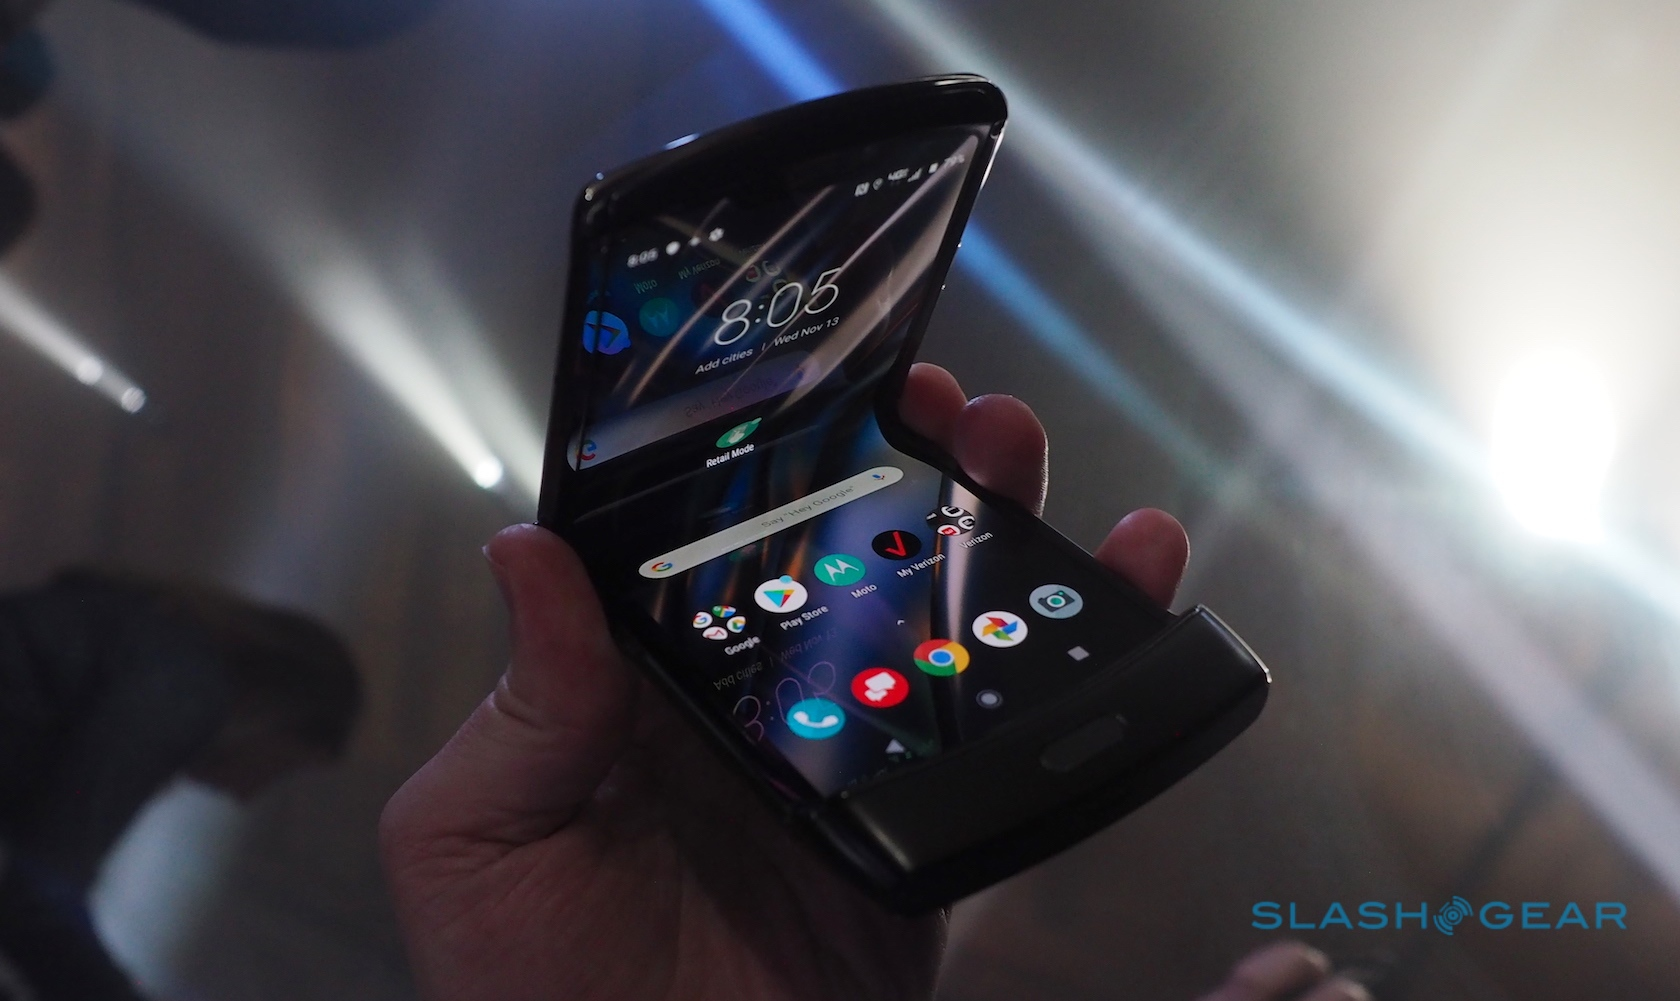 When people ask about the 2019 Motorola Razr, here's what I say